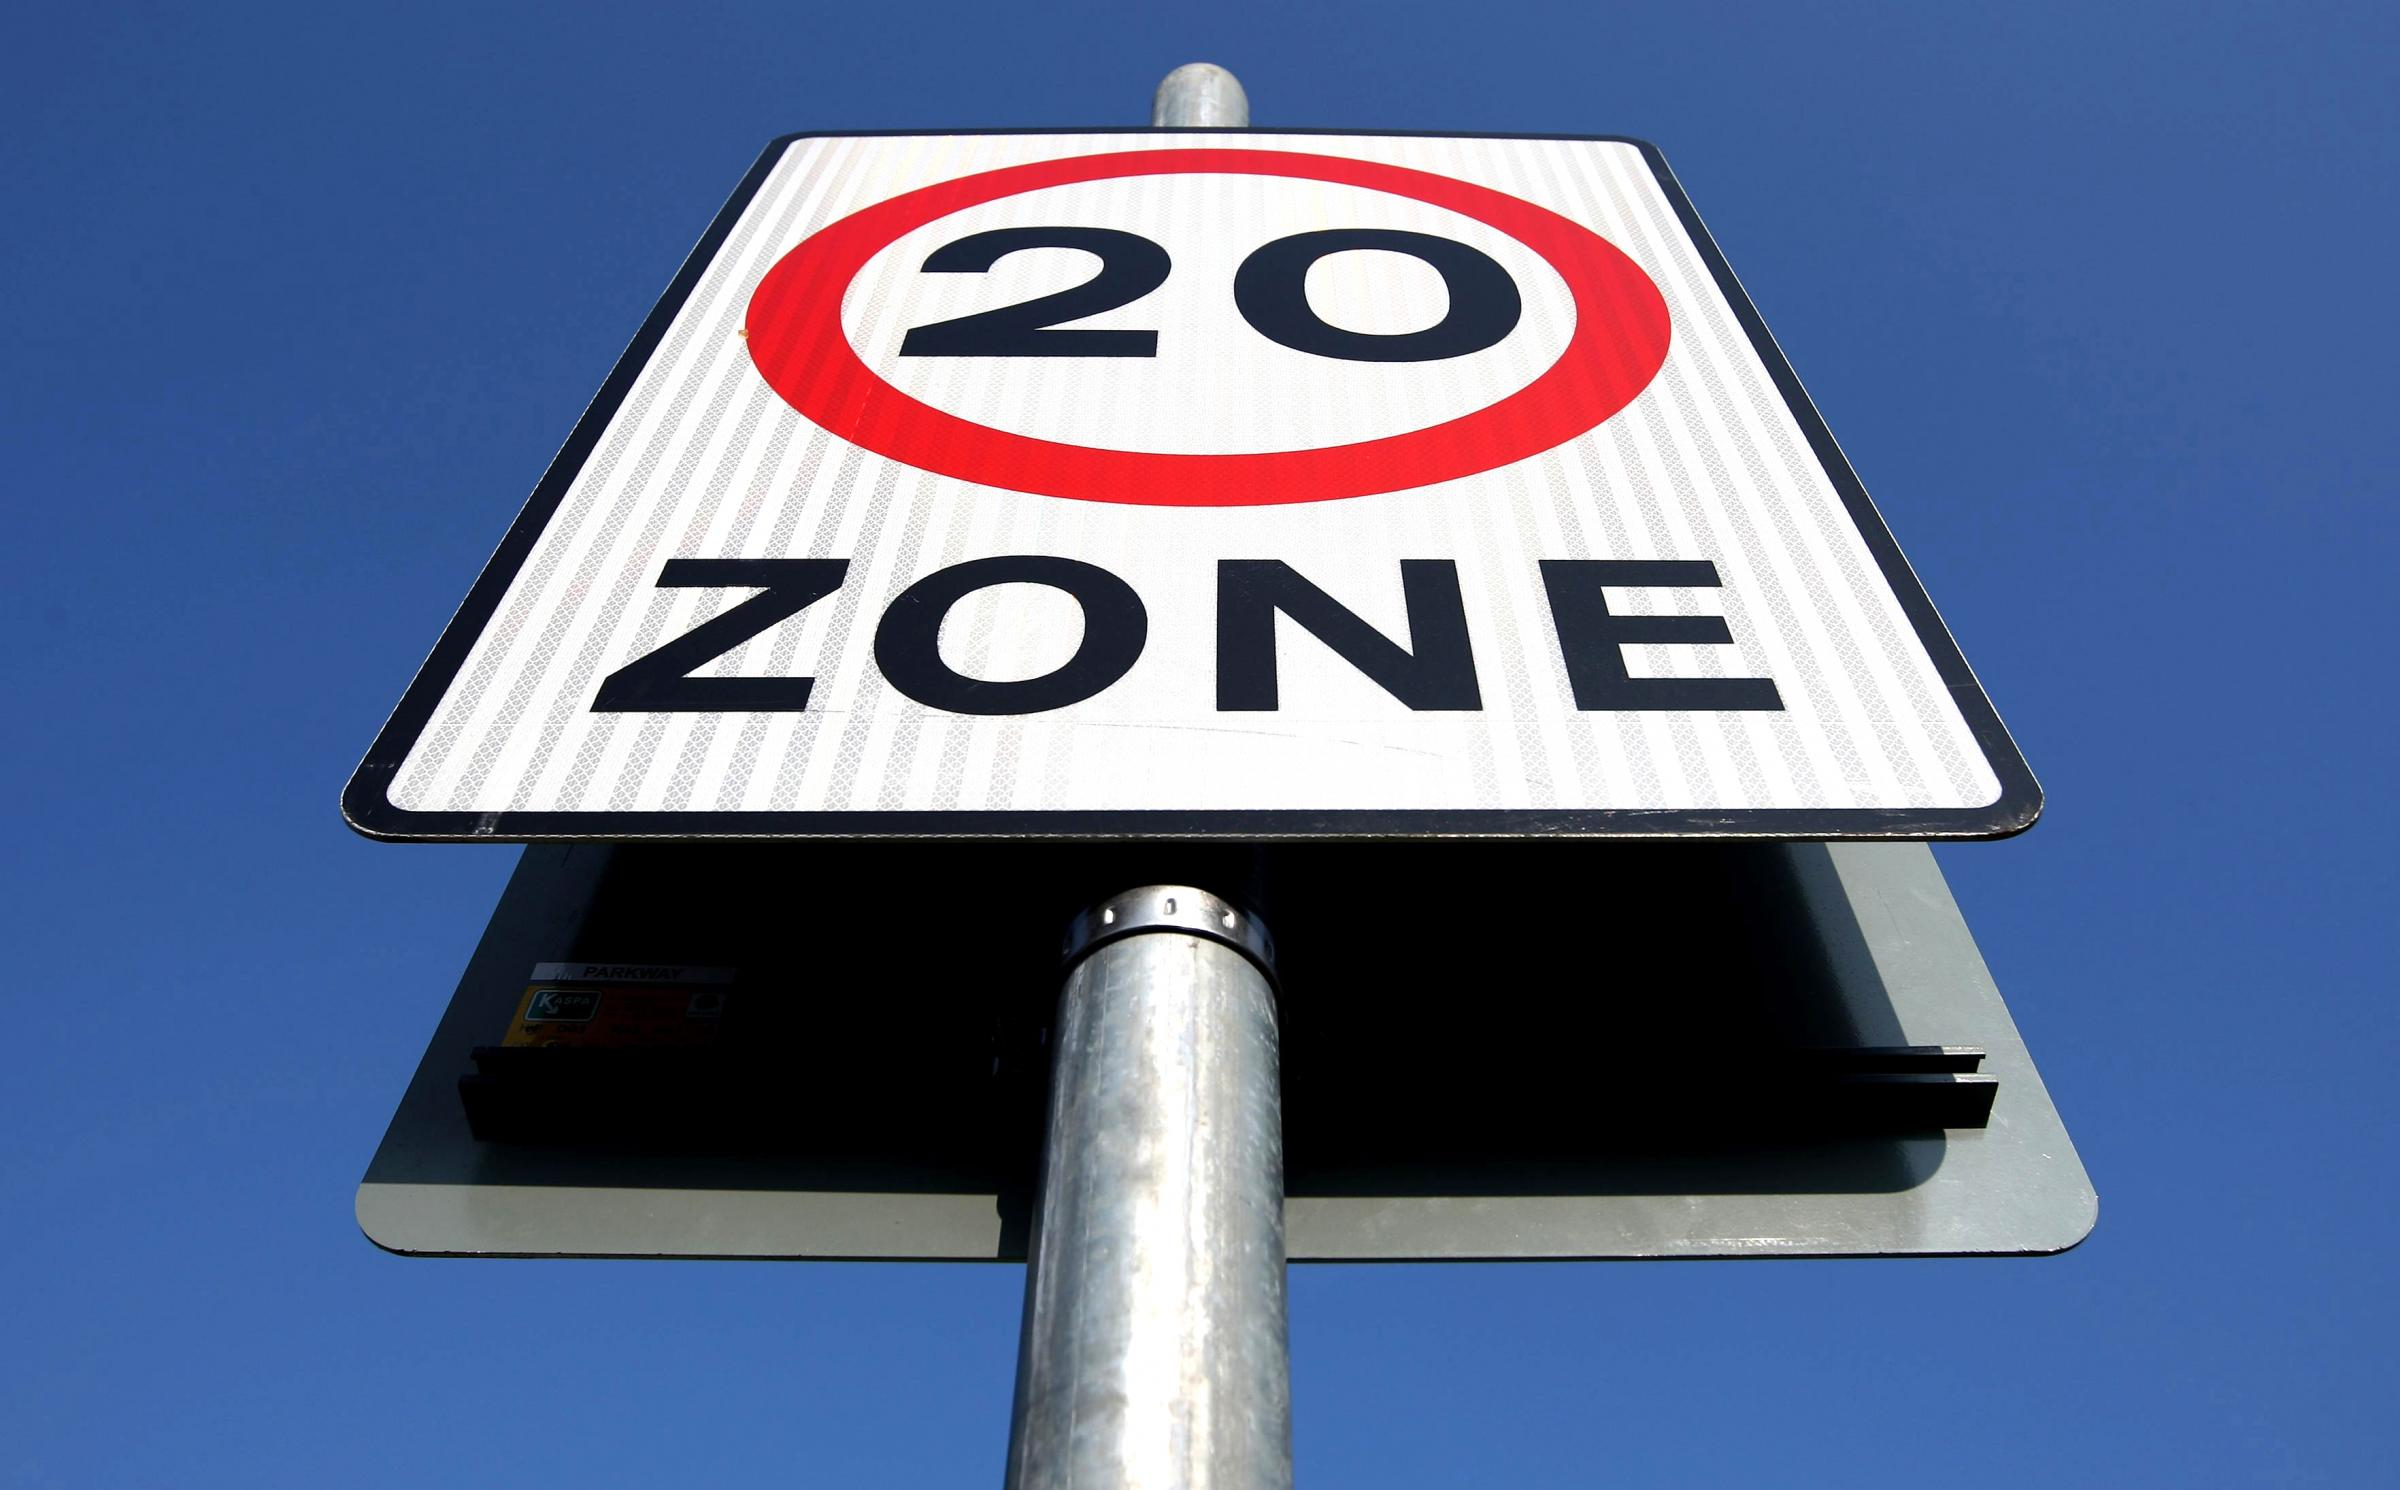 All new housing developments to have 'default' 20mph speed limit